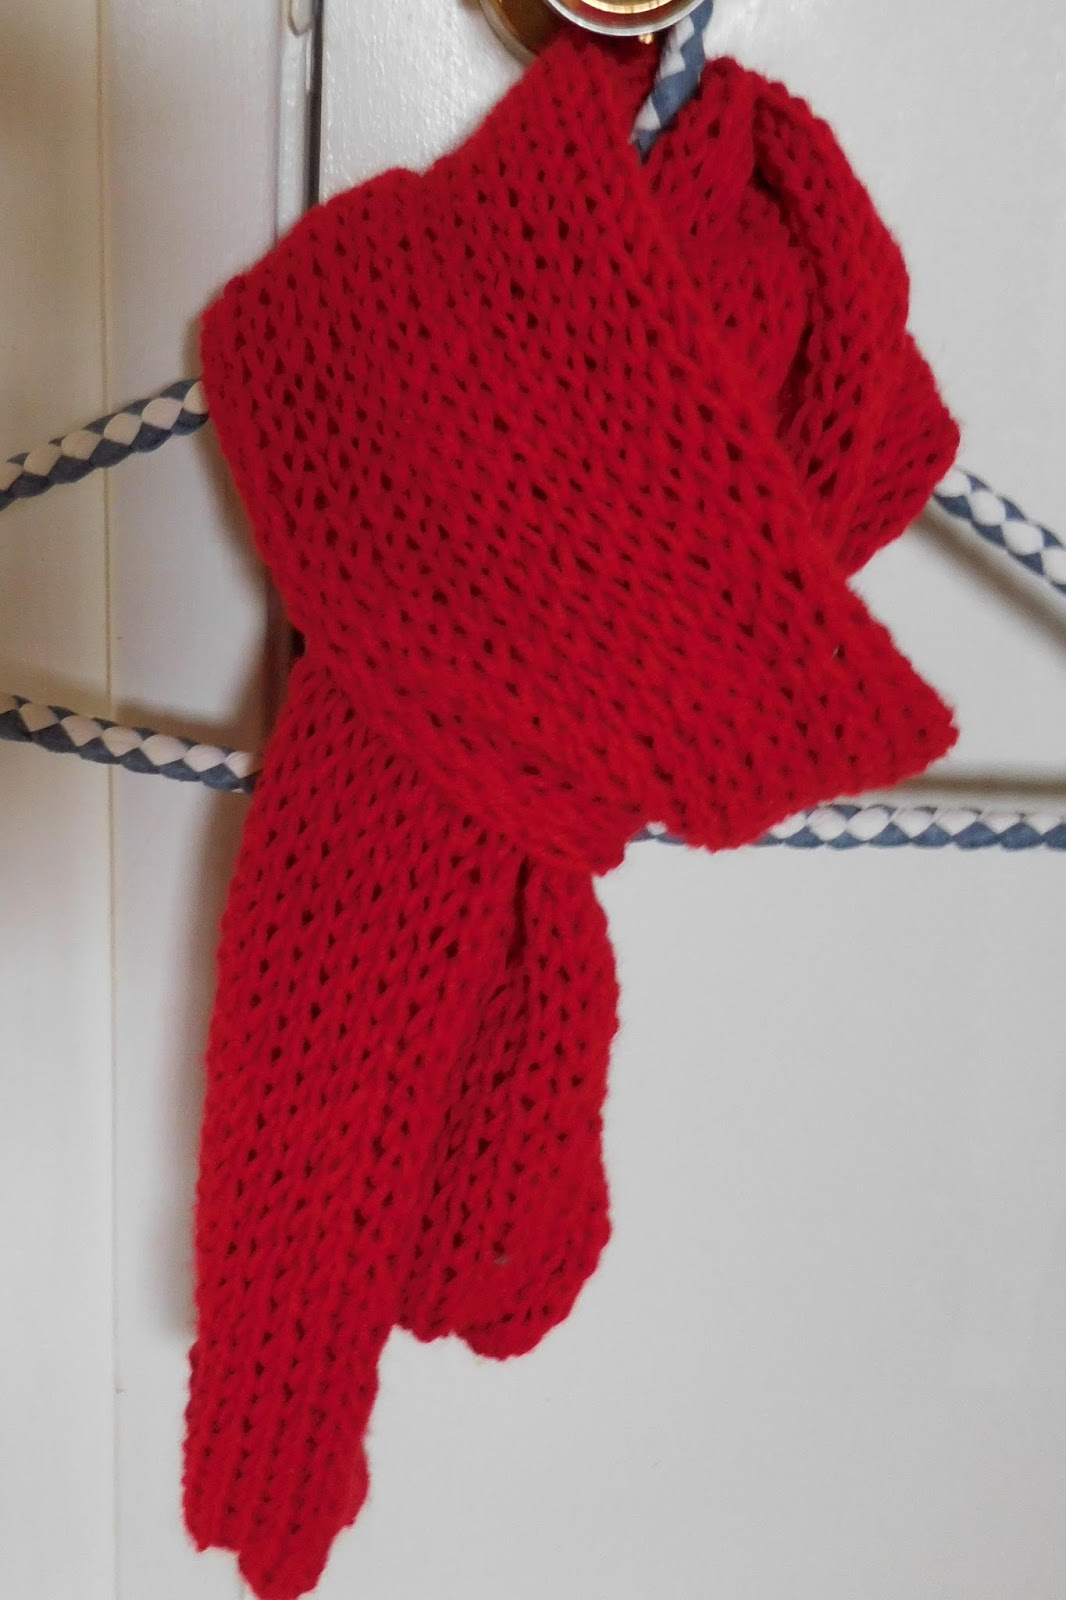 Needles to say...: red scarf pattern for AIDS Awareness Week campaign...